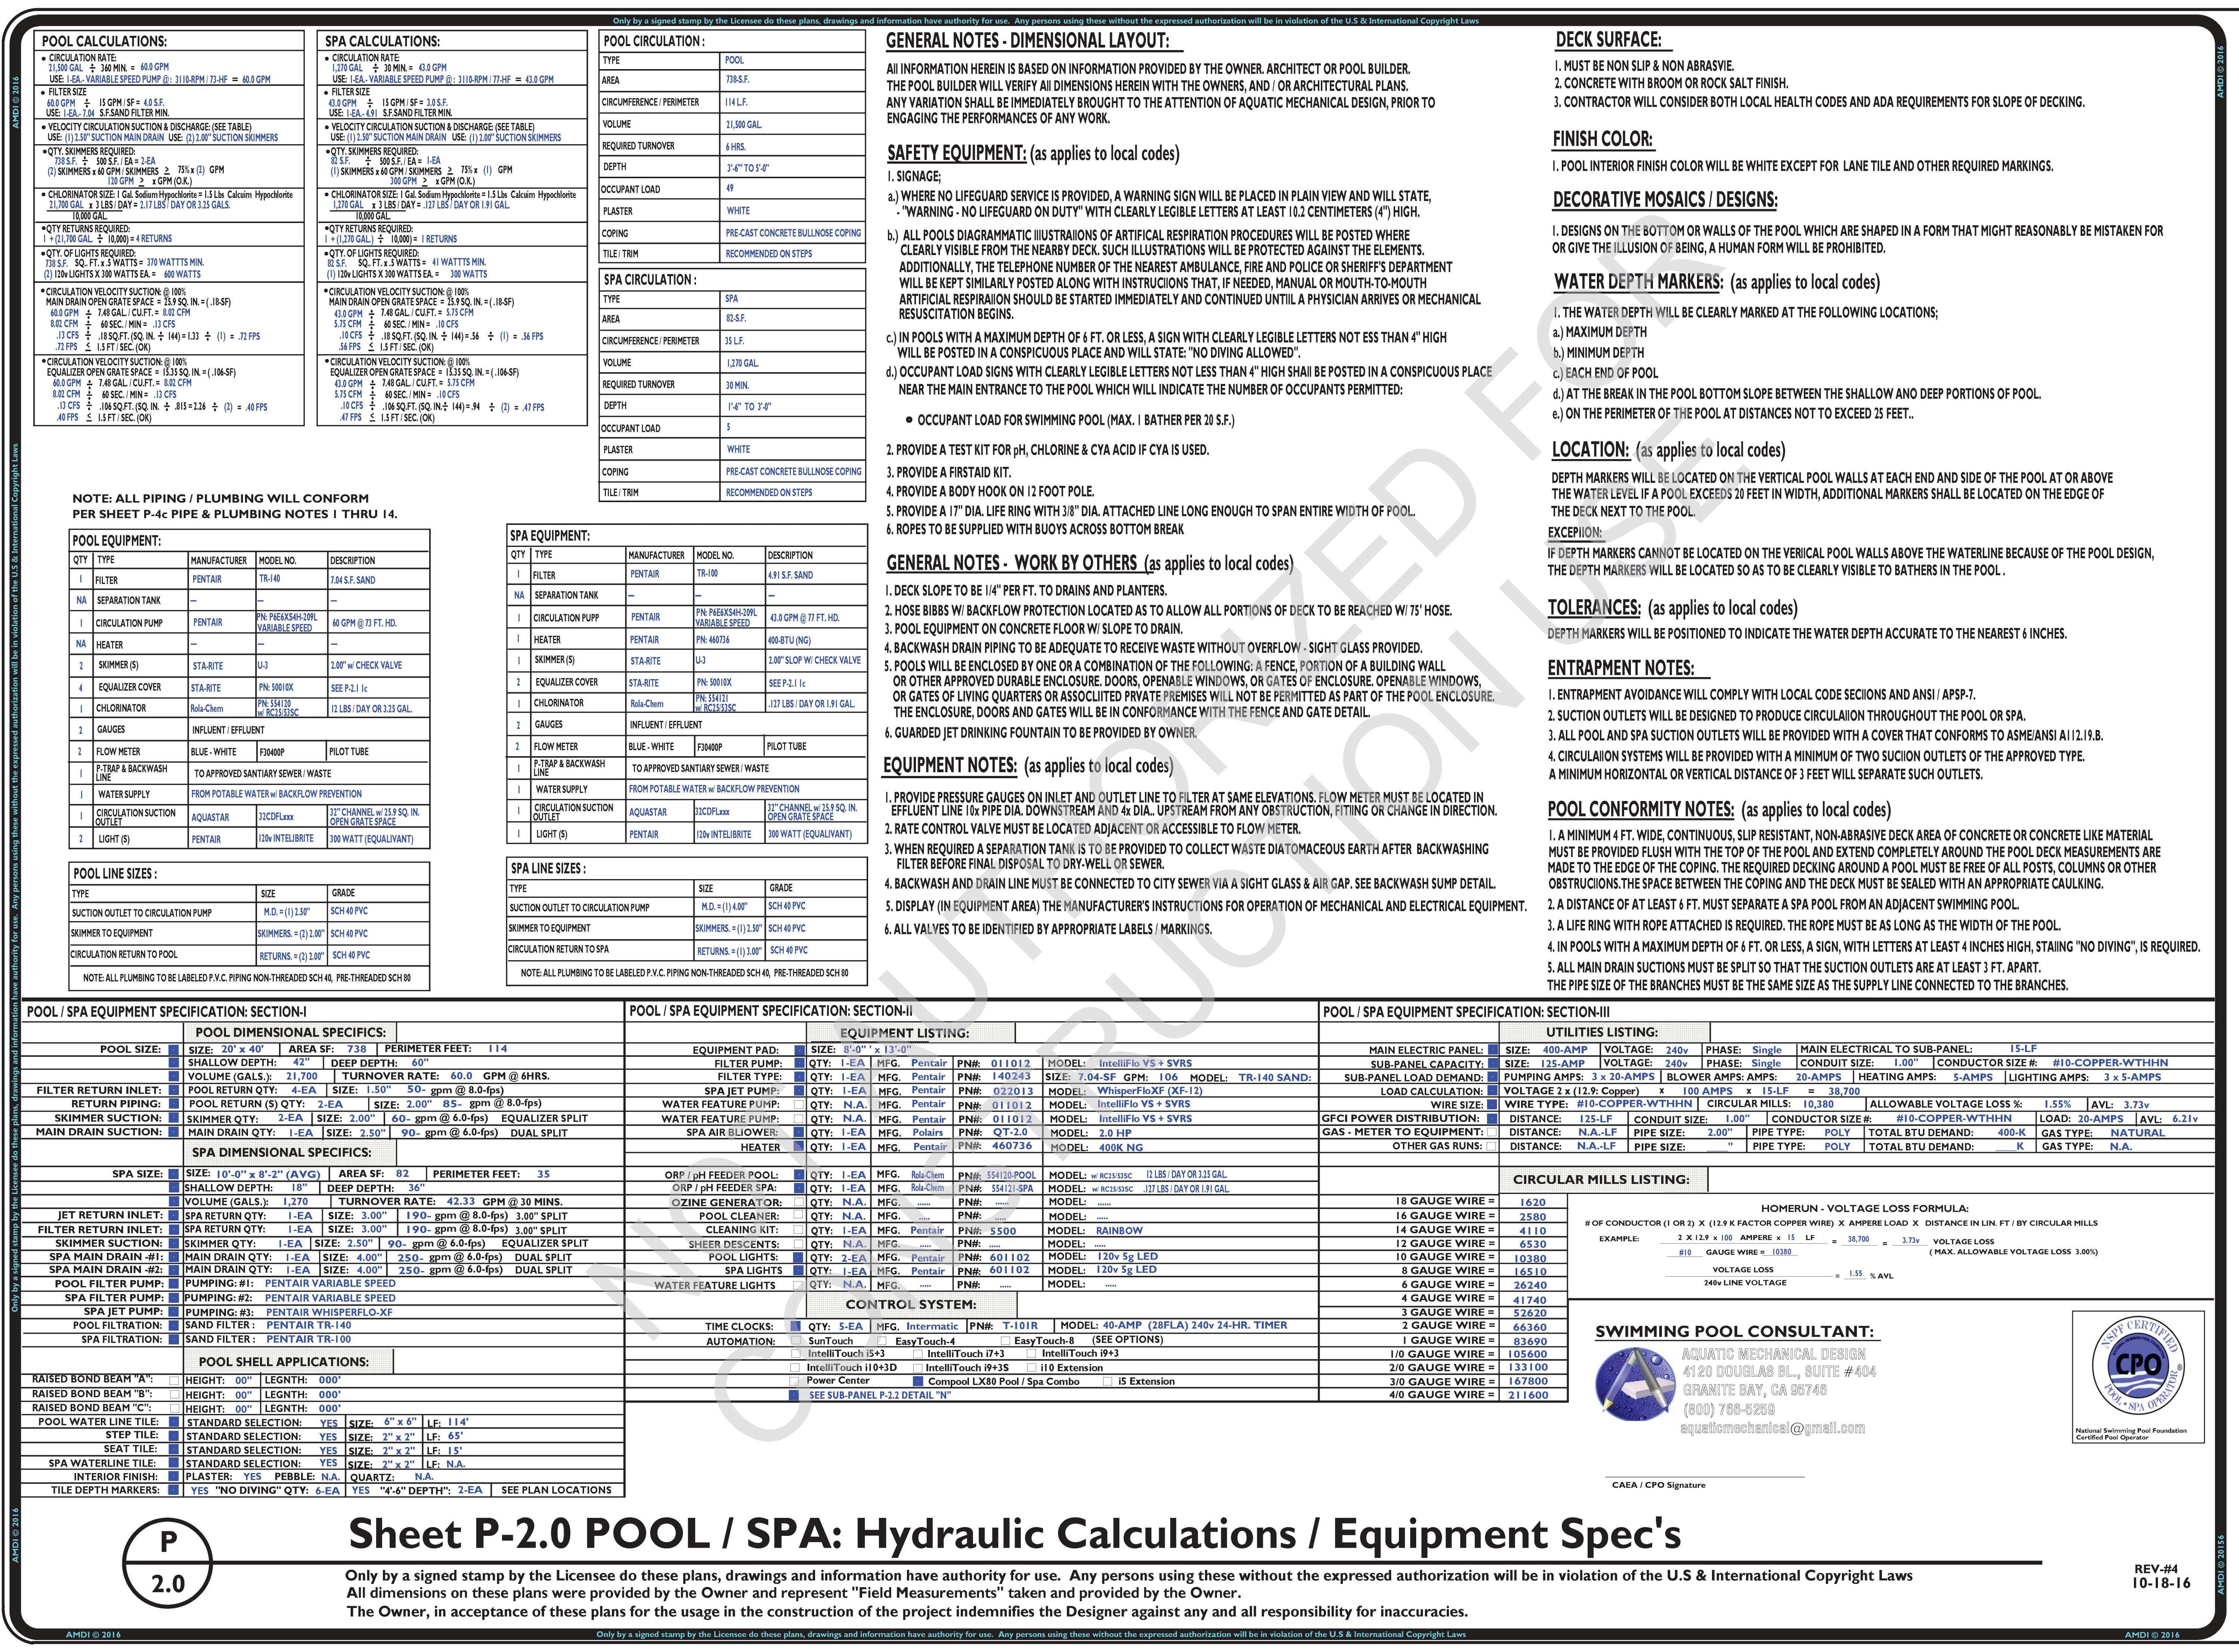 P-2.0 Calculations & Equipment Spec's